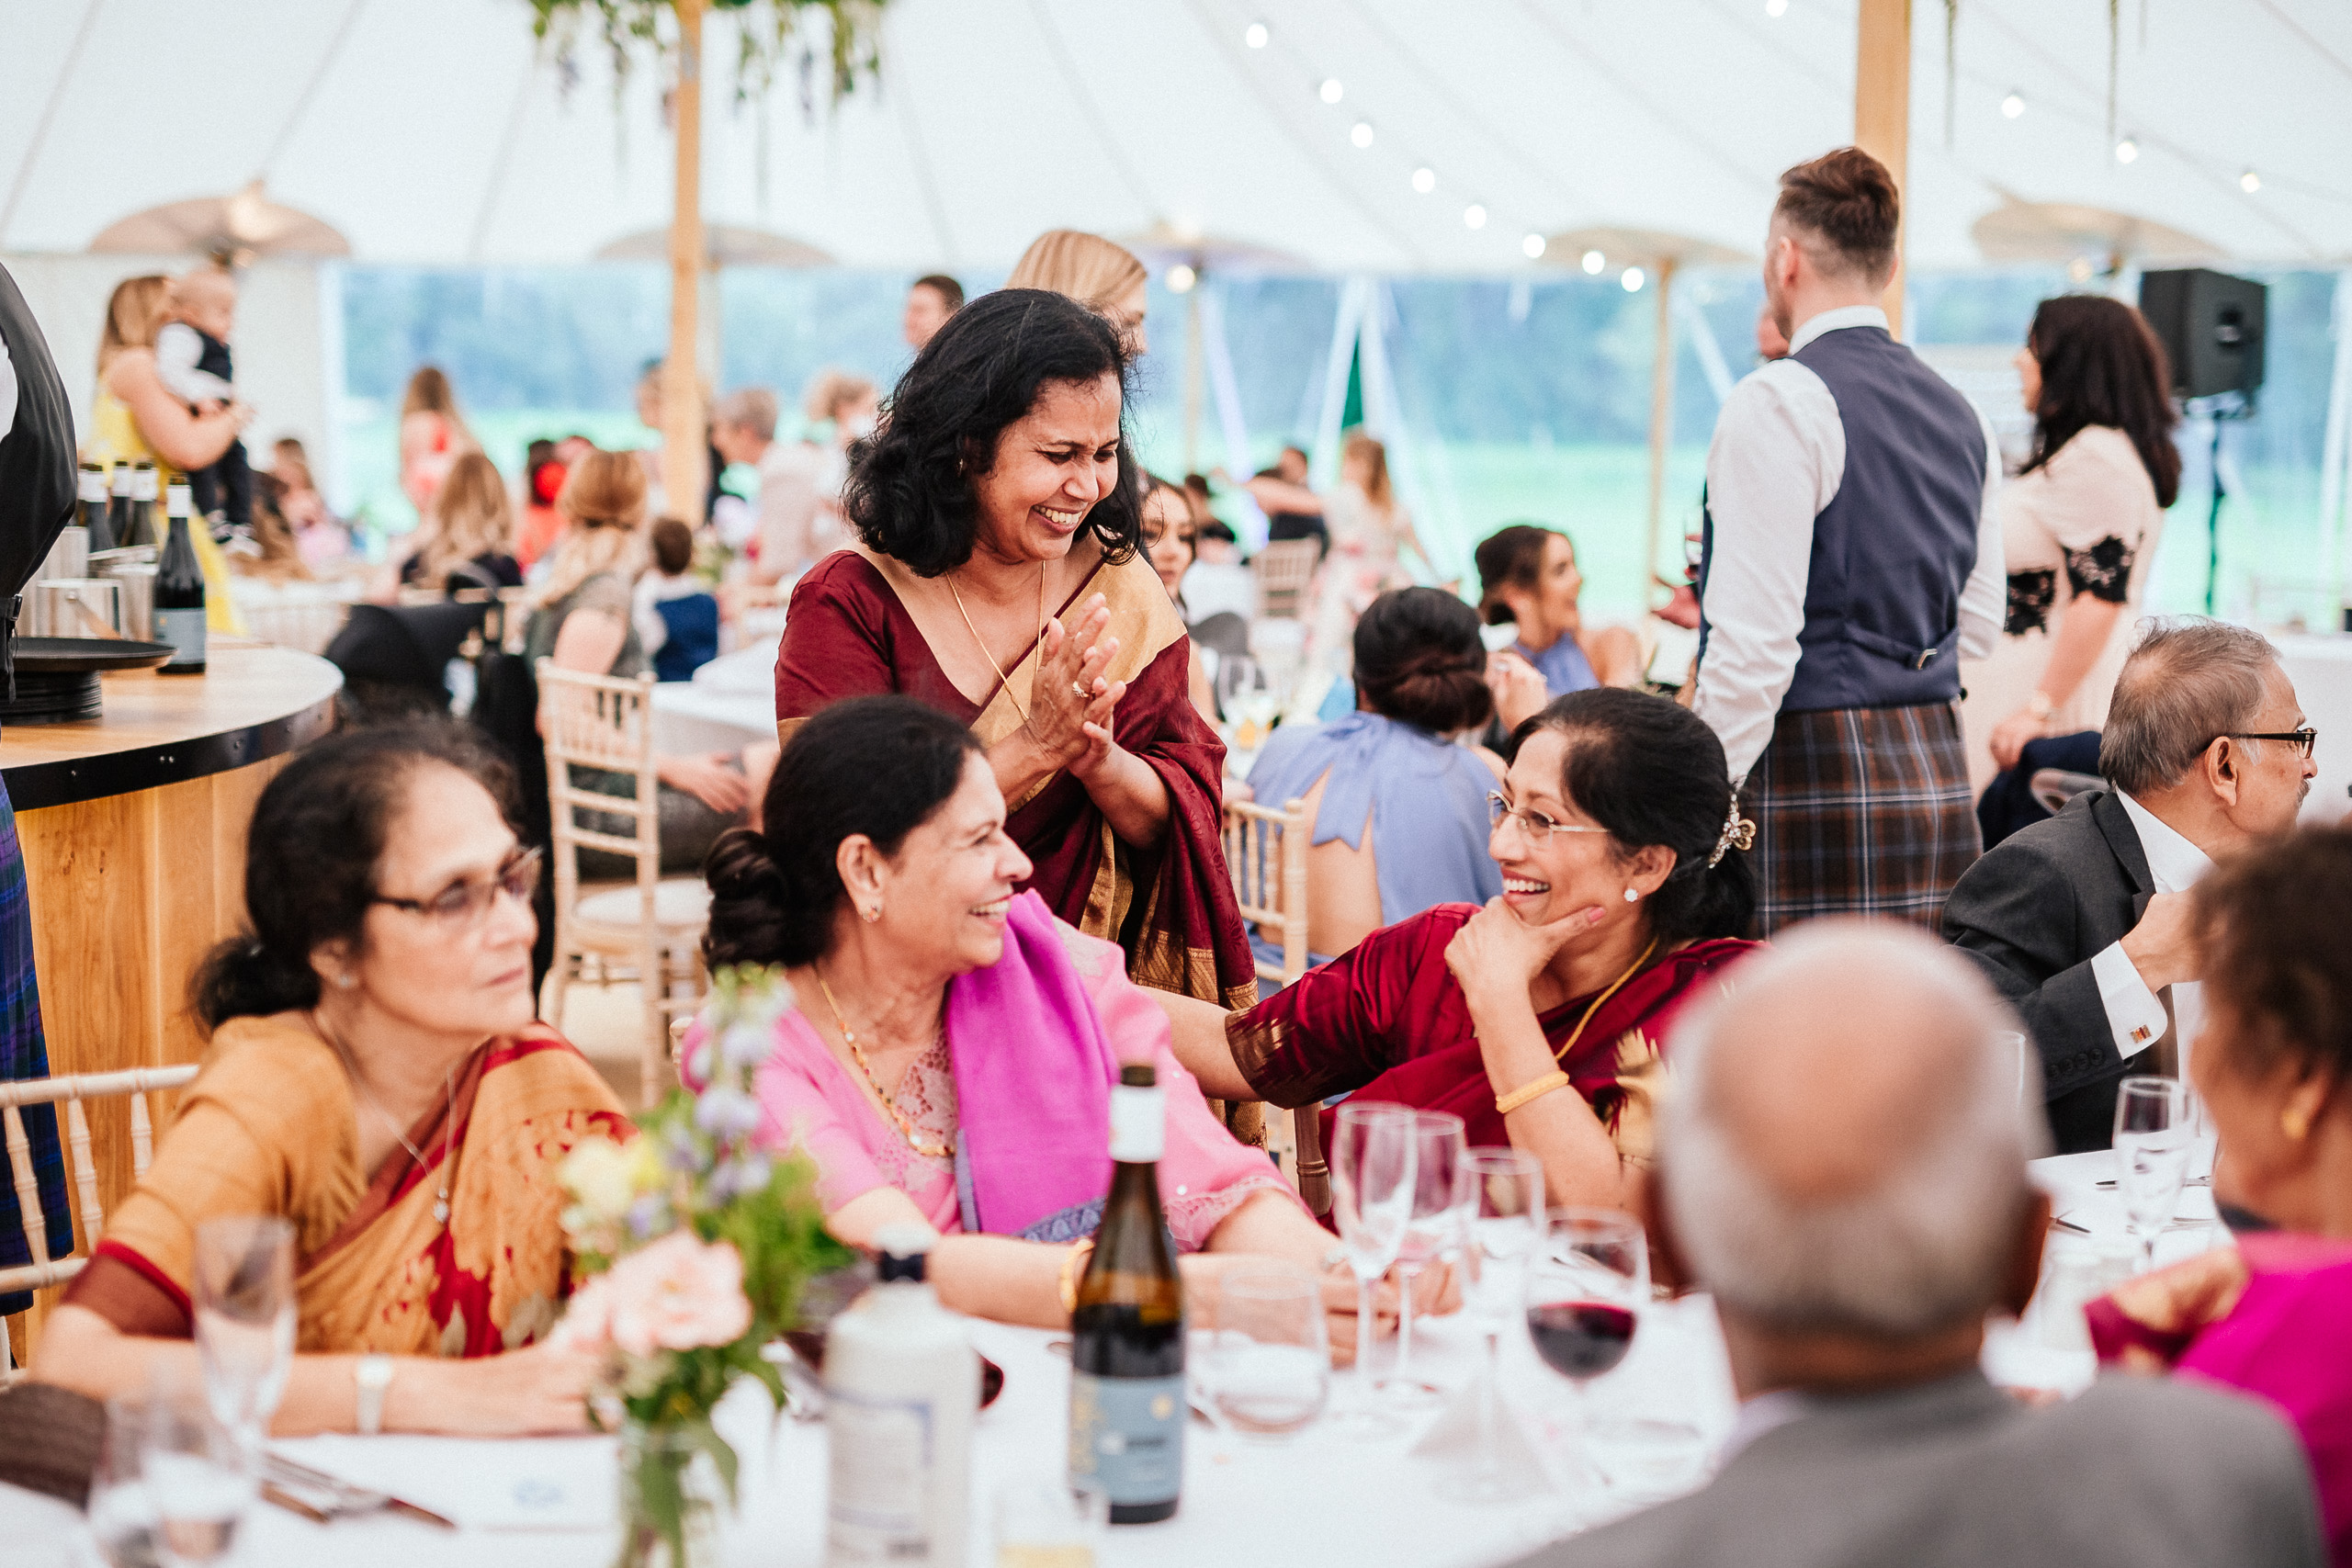 PapaKåta couple April & Martin's Sperry wedding at Arniston House, Scotland captured by Laurence Howe Photography- Indian Wedding Styling